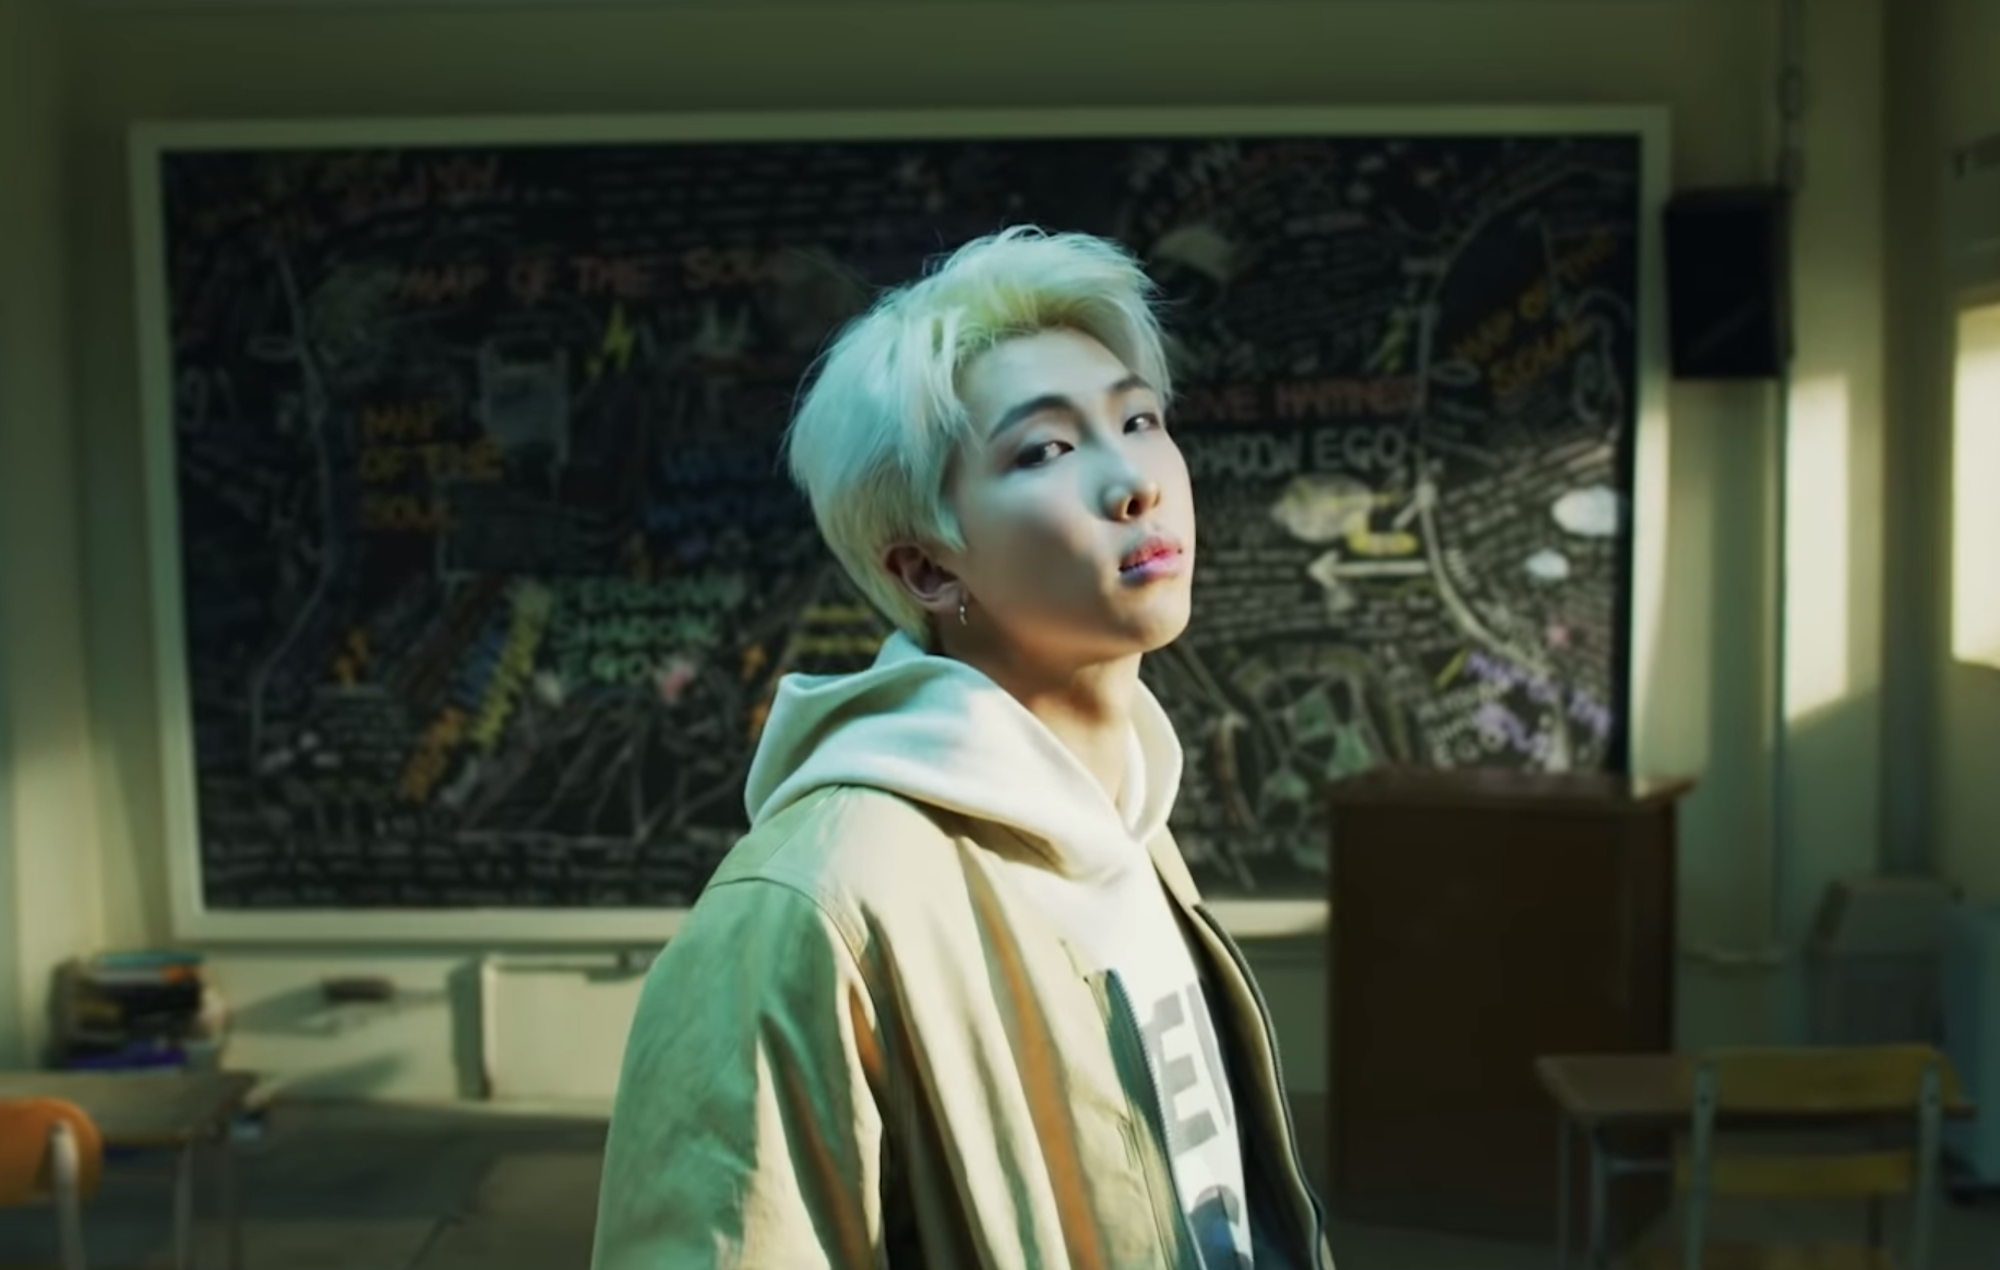 Fan theories about BTS' new album 'Map of the Soul: Persona'